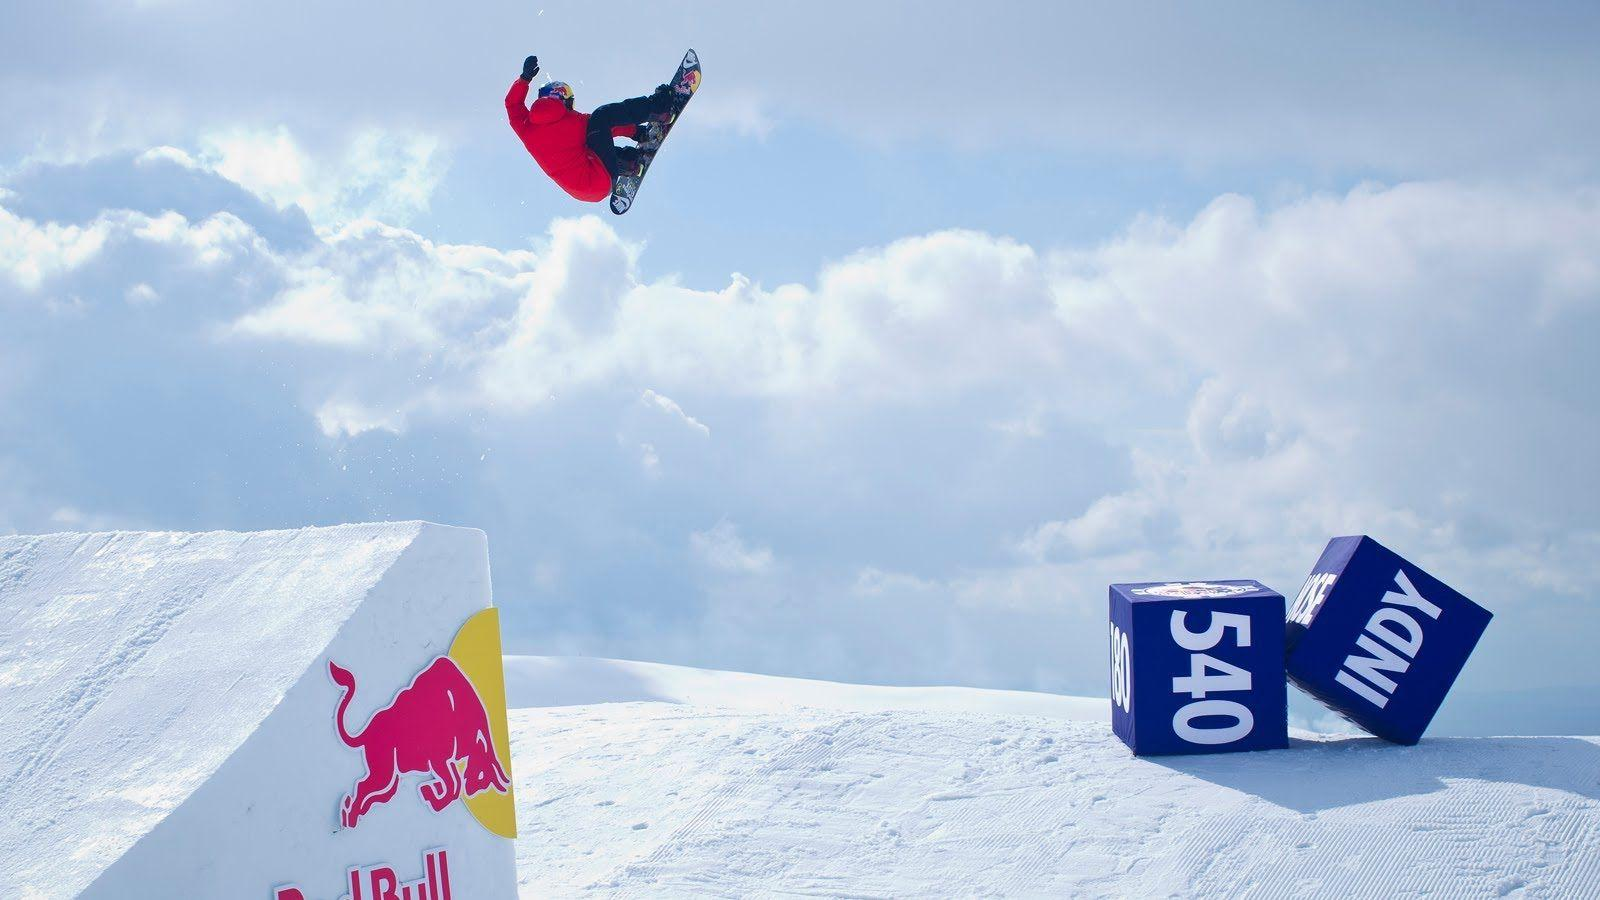 Red Bull Snowboarding Wallpapers Wallpaper Cave